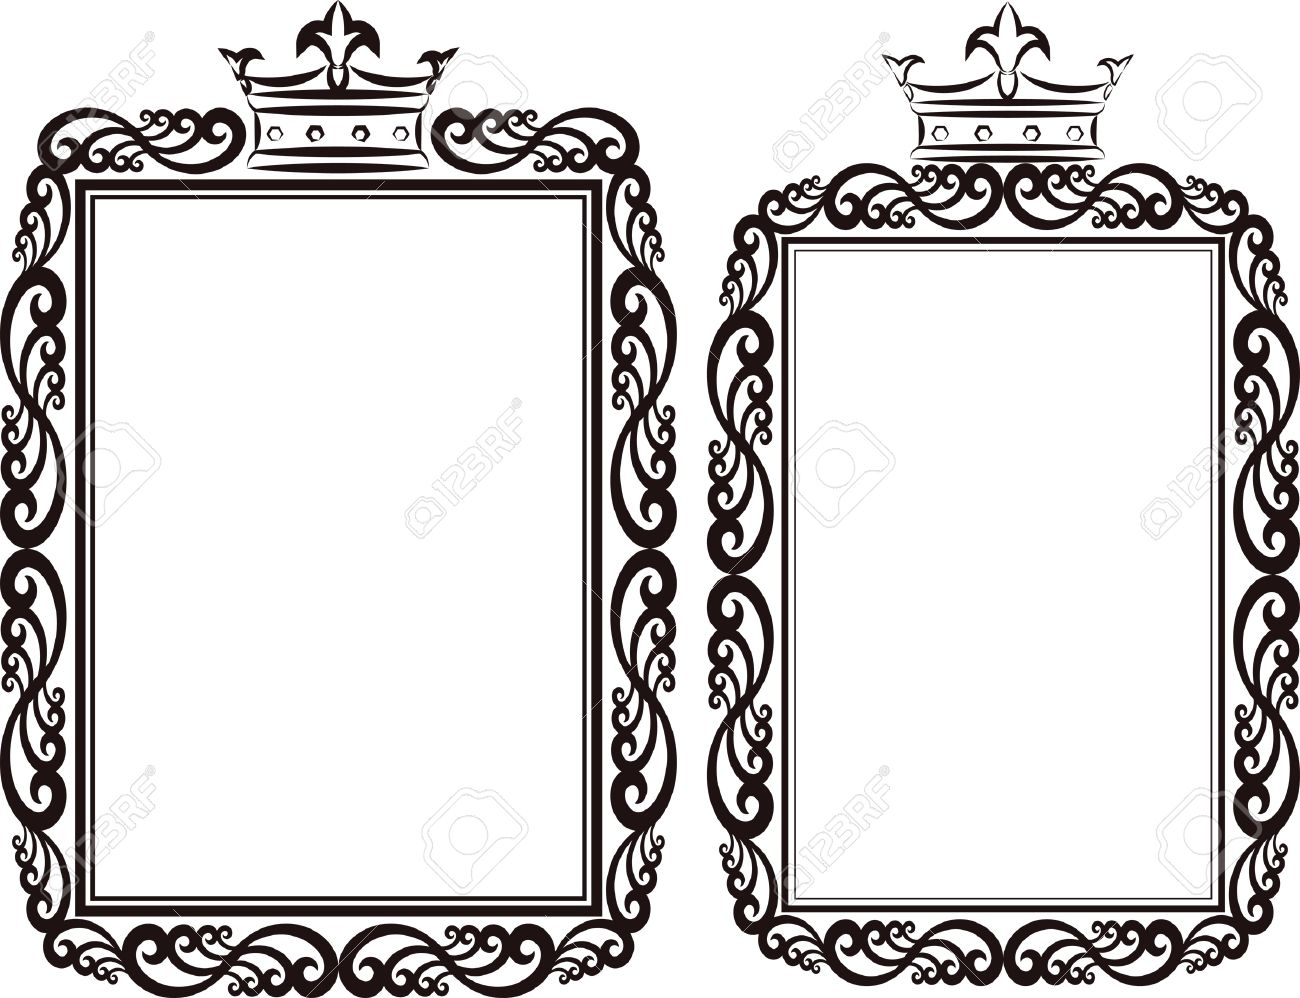 royal border clip art illustration royalty free cliparts vectors rh 123rf com clipart borders and frames clip art frames and borders for fishing